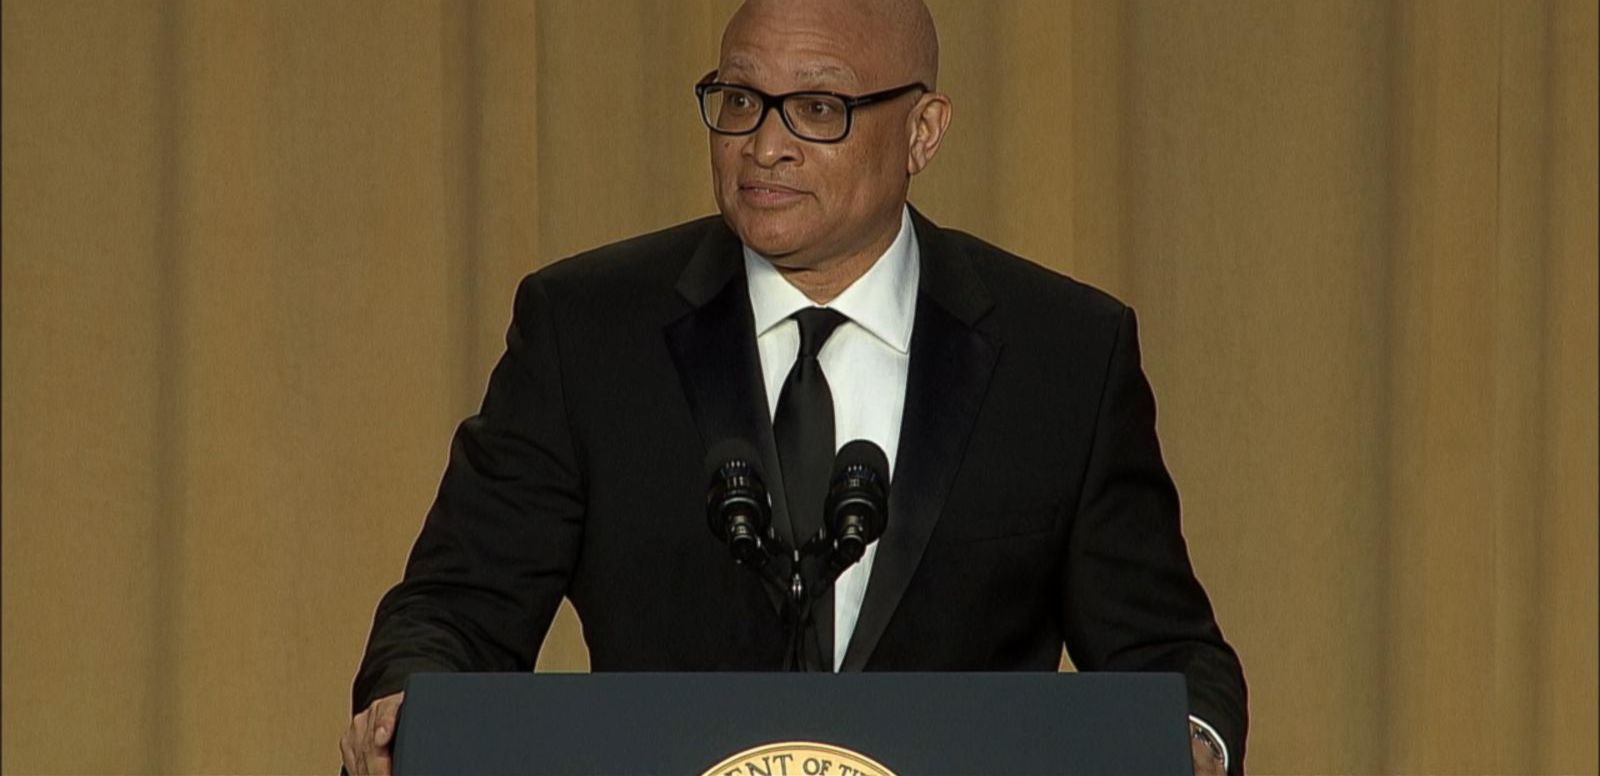 VIDEO: Comedian Larry Wilmore Roasts Washington Press